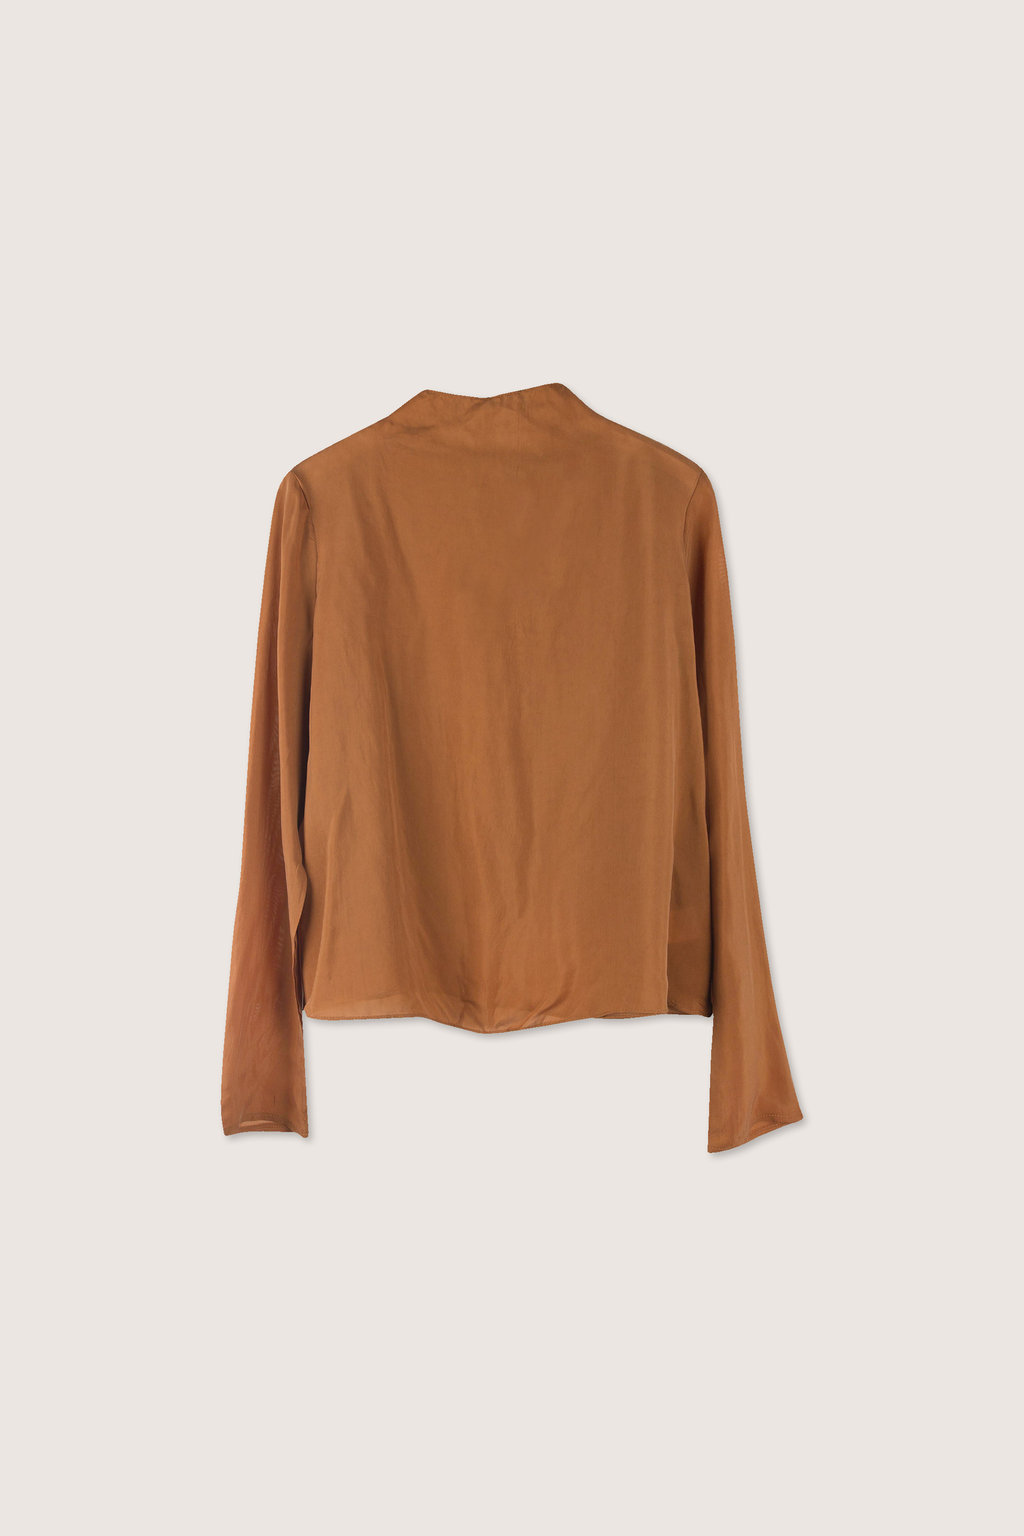 Blouse H302 Brown 6